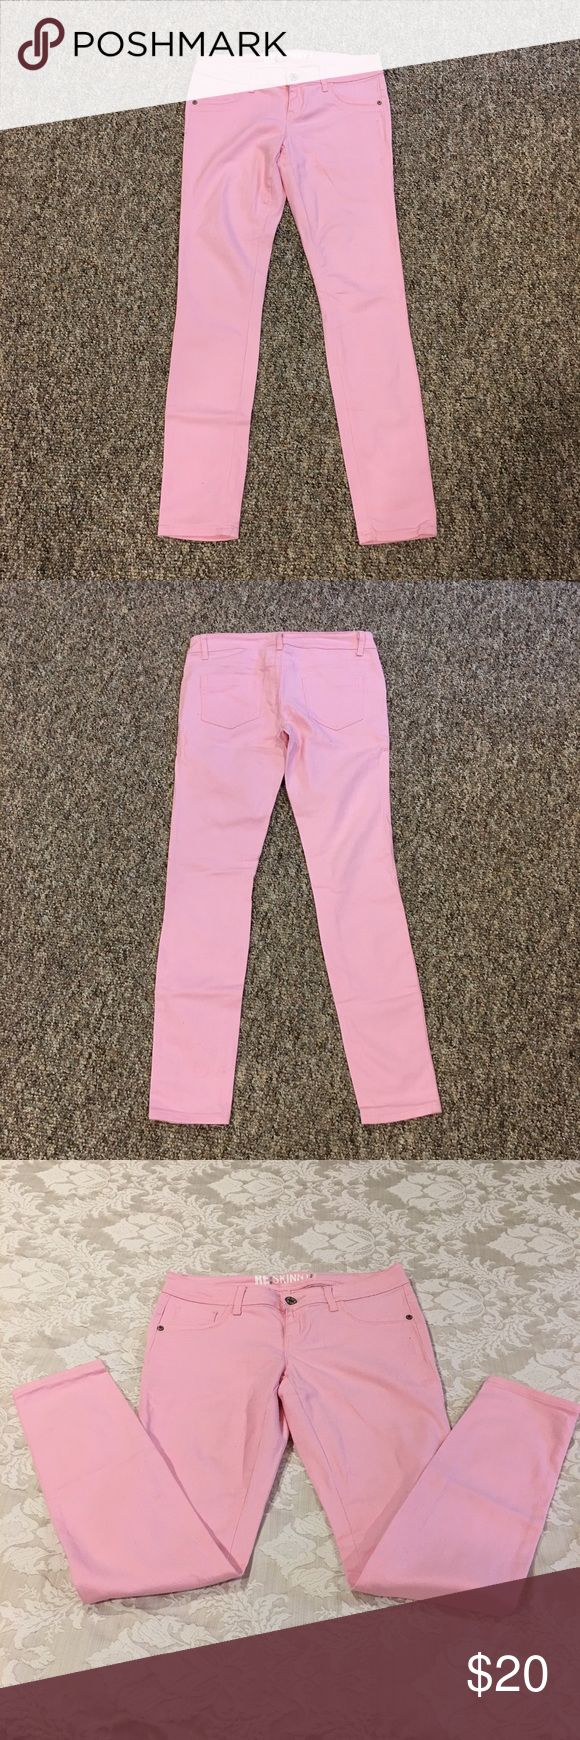 """Pale Pink Skinny Jeans Pale Pink Skinny Jeans - worn once - European size 36 which is a US 6 - 31"""" inseam. Jeans Skinny"""